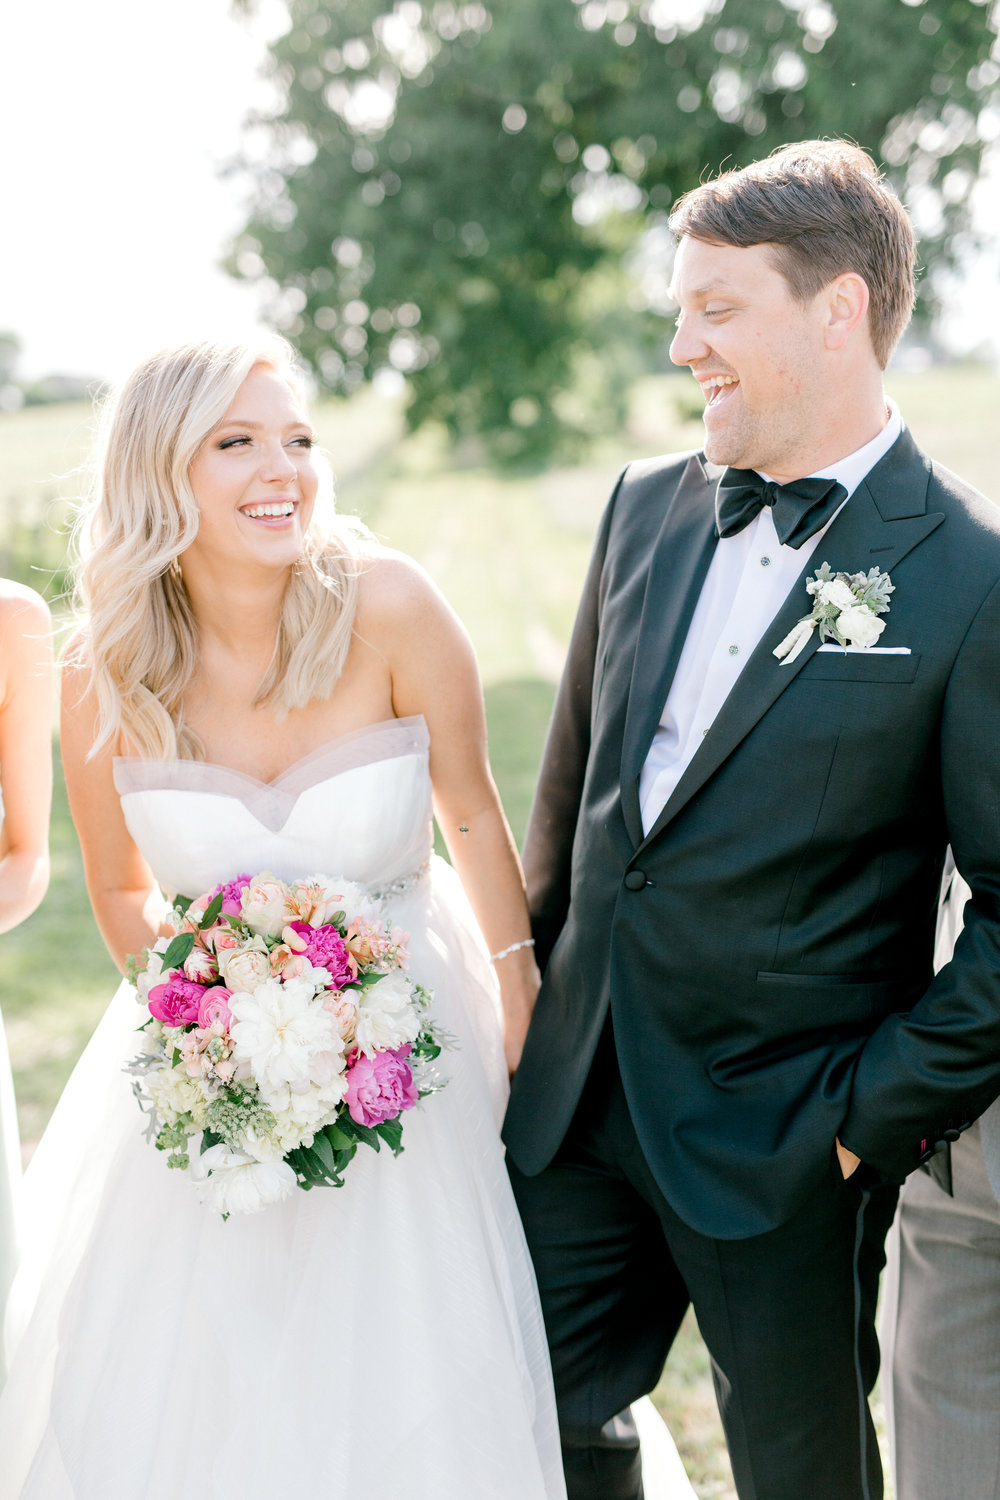 haley-richter-photography-fero-vineyards-summer-wedding-allison-and-josh-winery-pennsylvania-classic-pink-and-white-wedding-black-suit-peonies-winery